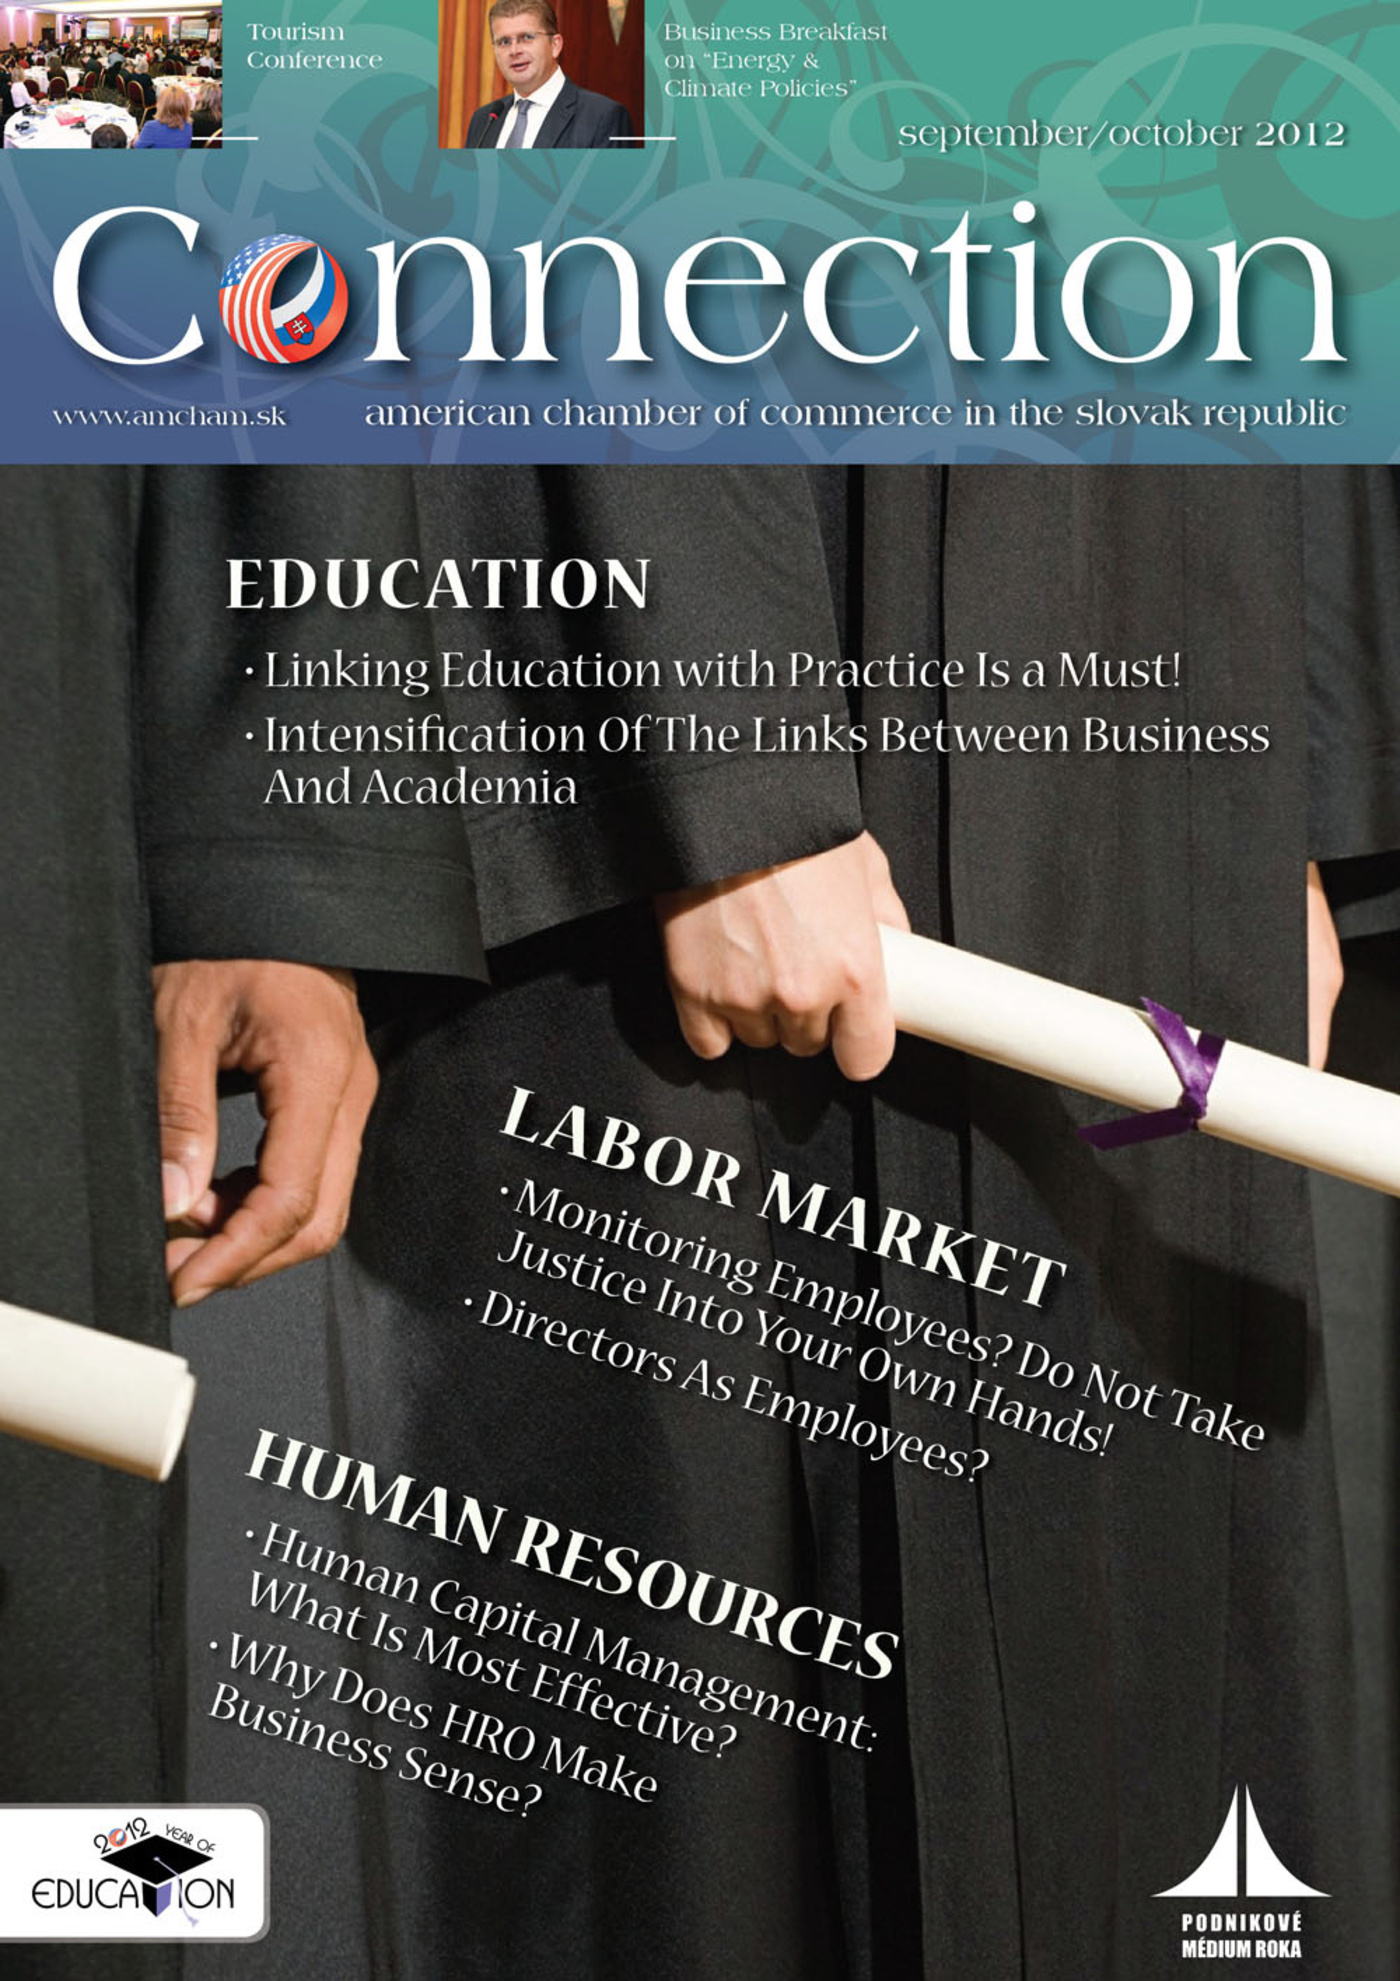 2012-09 / Business & Educatio, Labor Market & HR